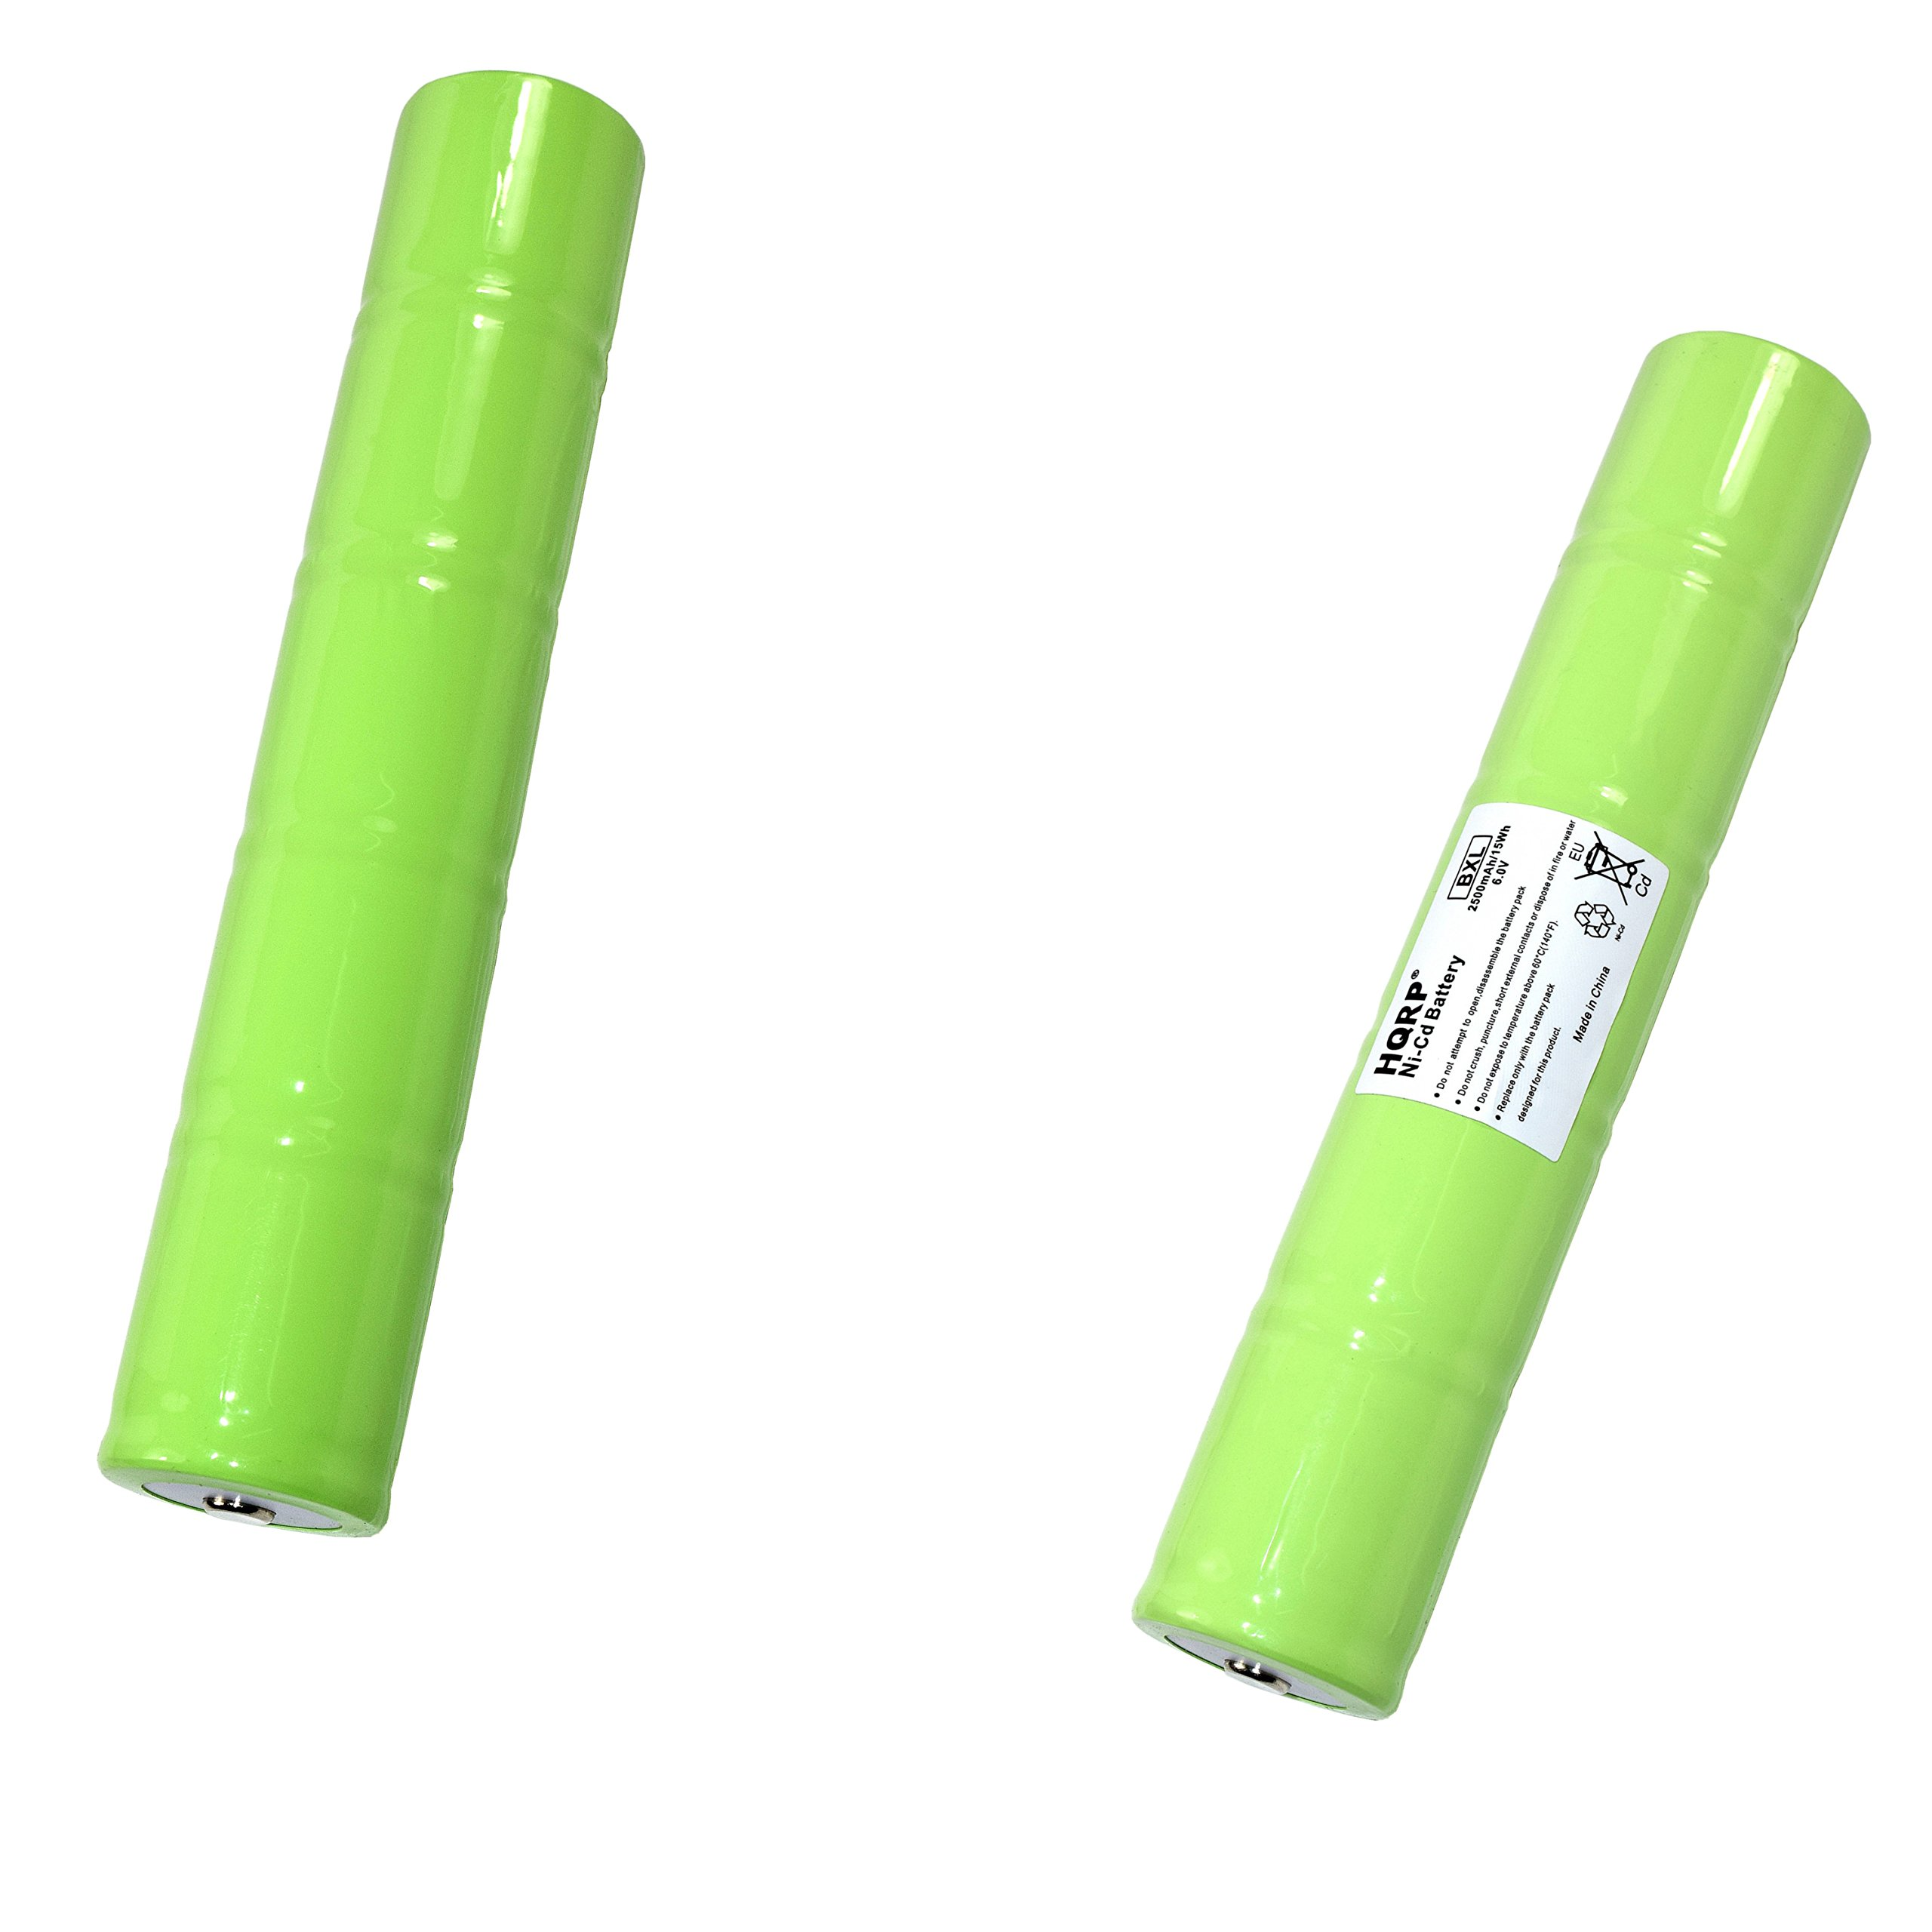 HQRP 2-Pack Battery for Maglite 201701, 40070249, ESR4EE3060, ET2600D, ML5000, N38AF008A Replacement Plus HQRP Coaster